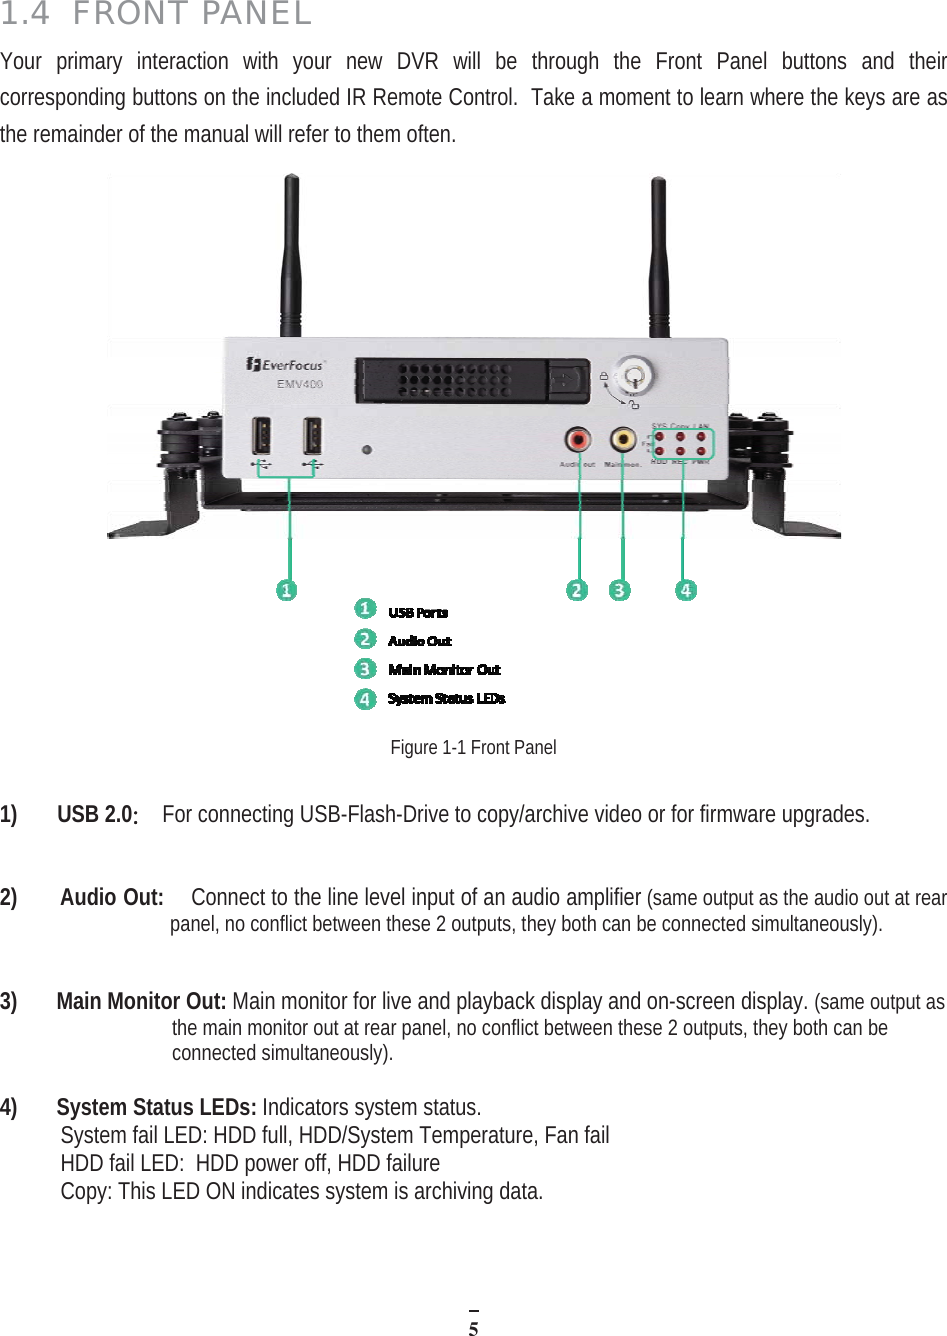 Everfocus Wiring Diagram Library H 264 Dvr Circuit 514 Front Panel Your Primary Interaction With New Will Be Through The